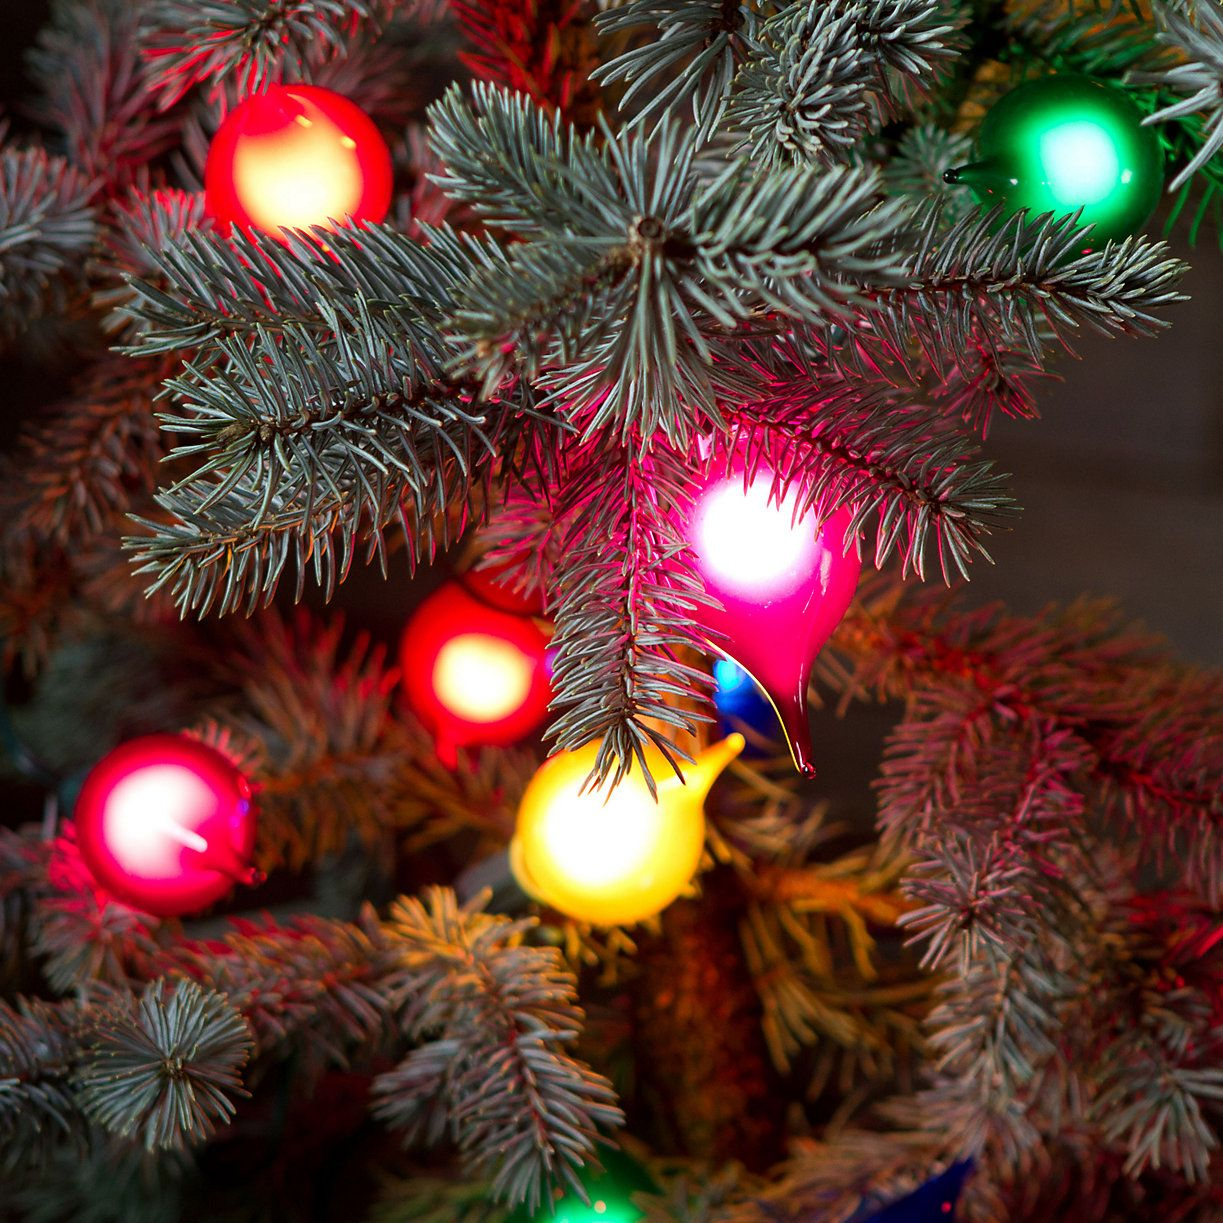 Festive Teardrop Light Set in Holiday Collections Doorstep Decorating at Terrain